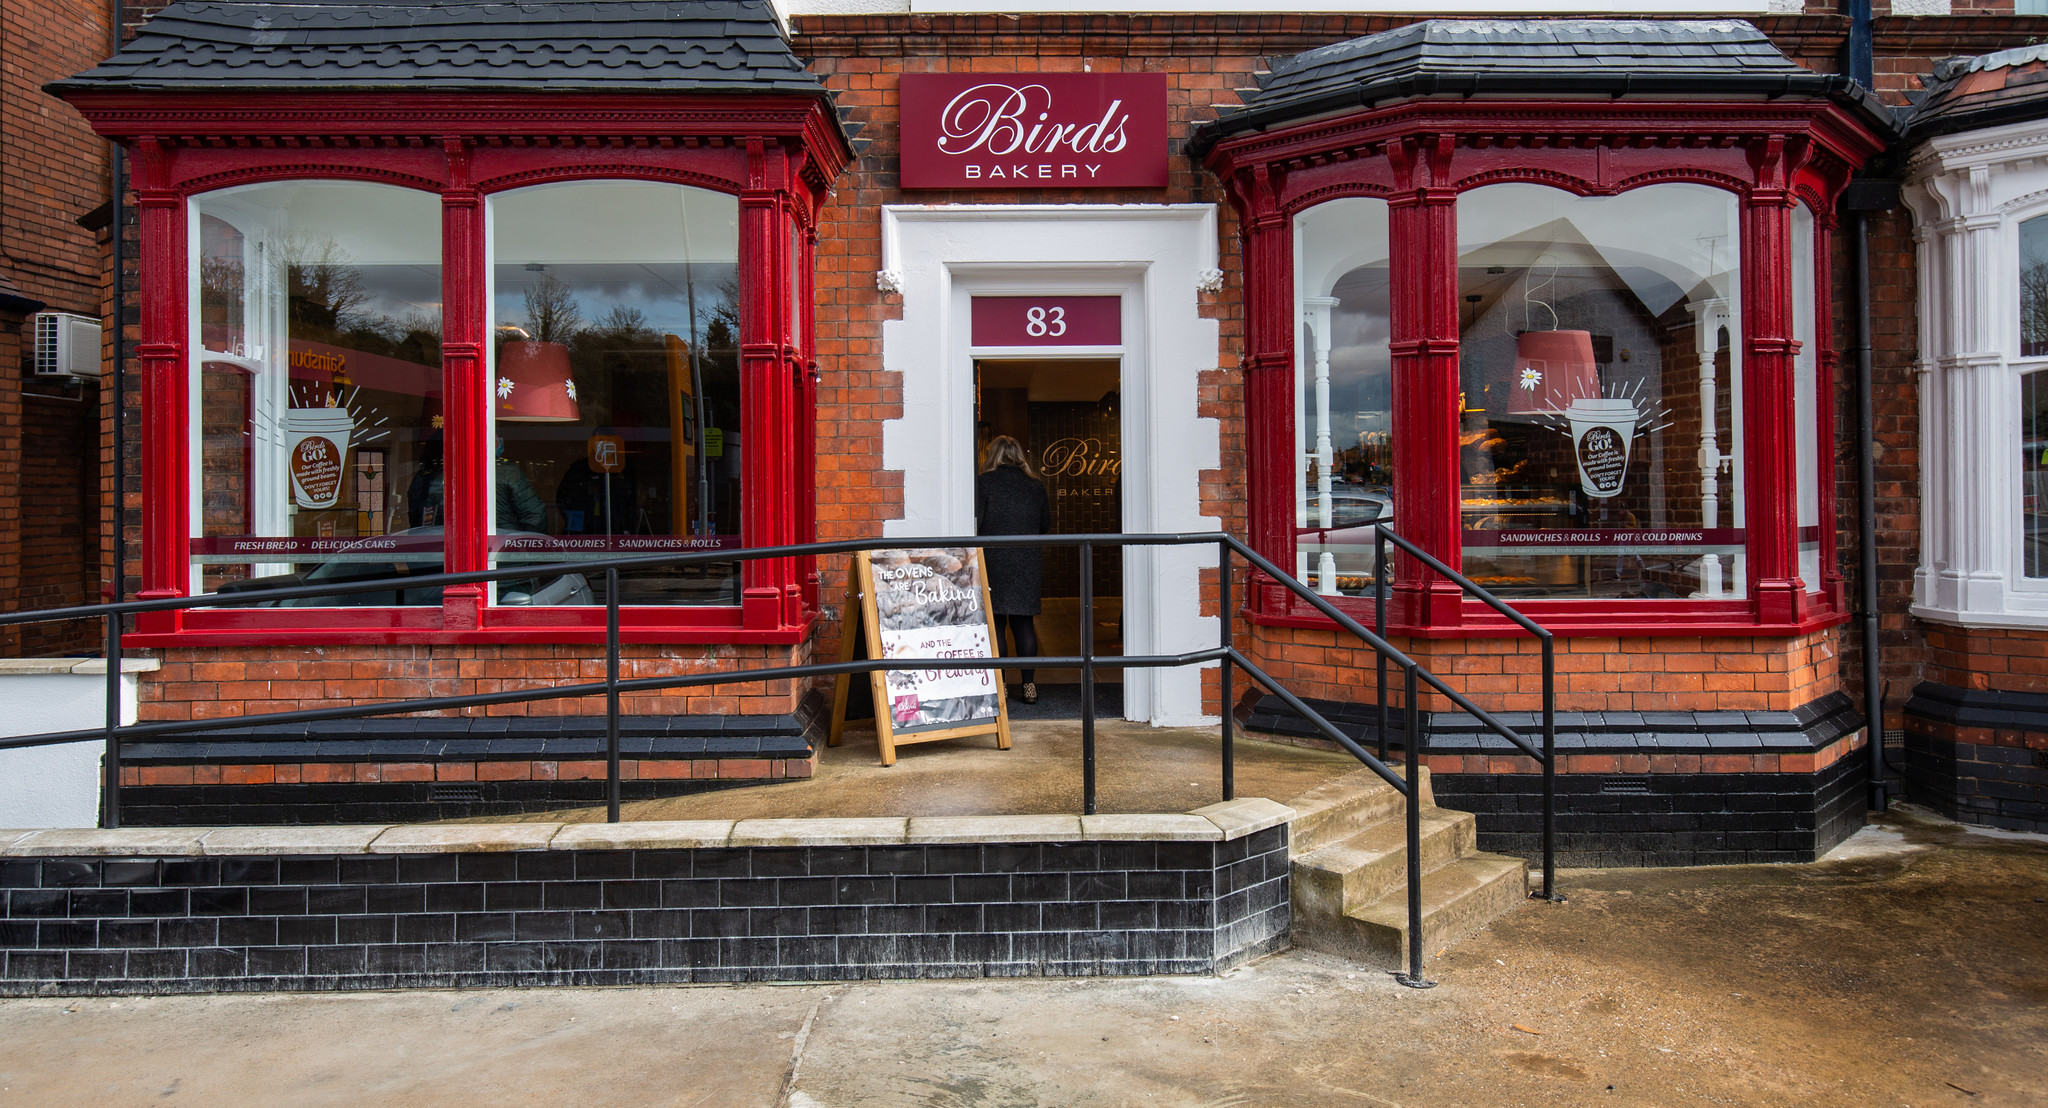 BAKERY REOPENS OUTDOOR SEATING AS RESTRICTIONS BEGIN TO EASE